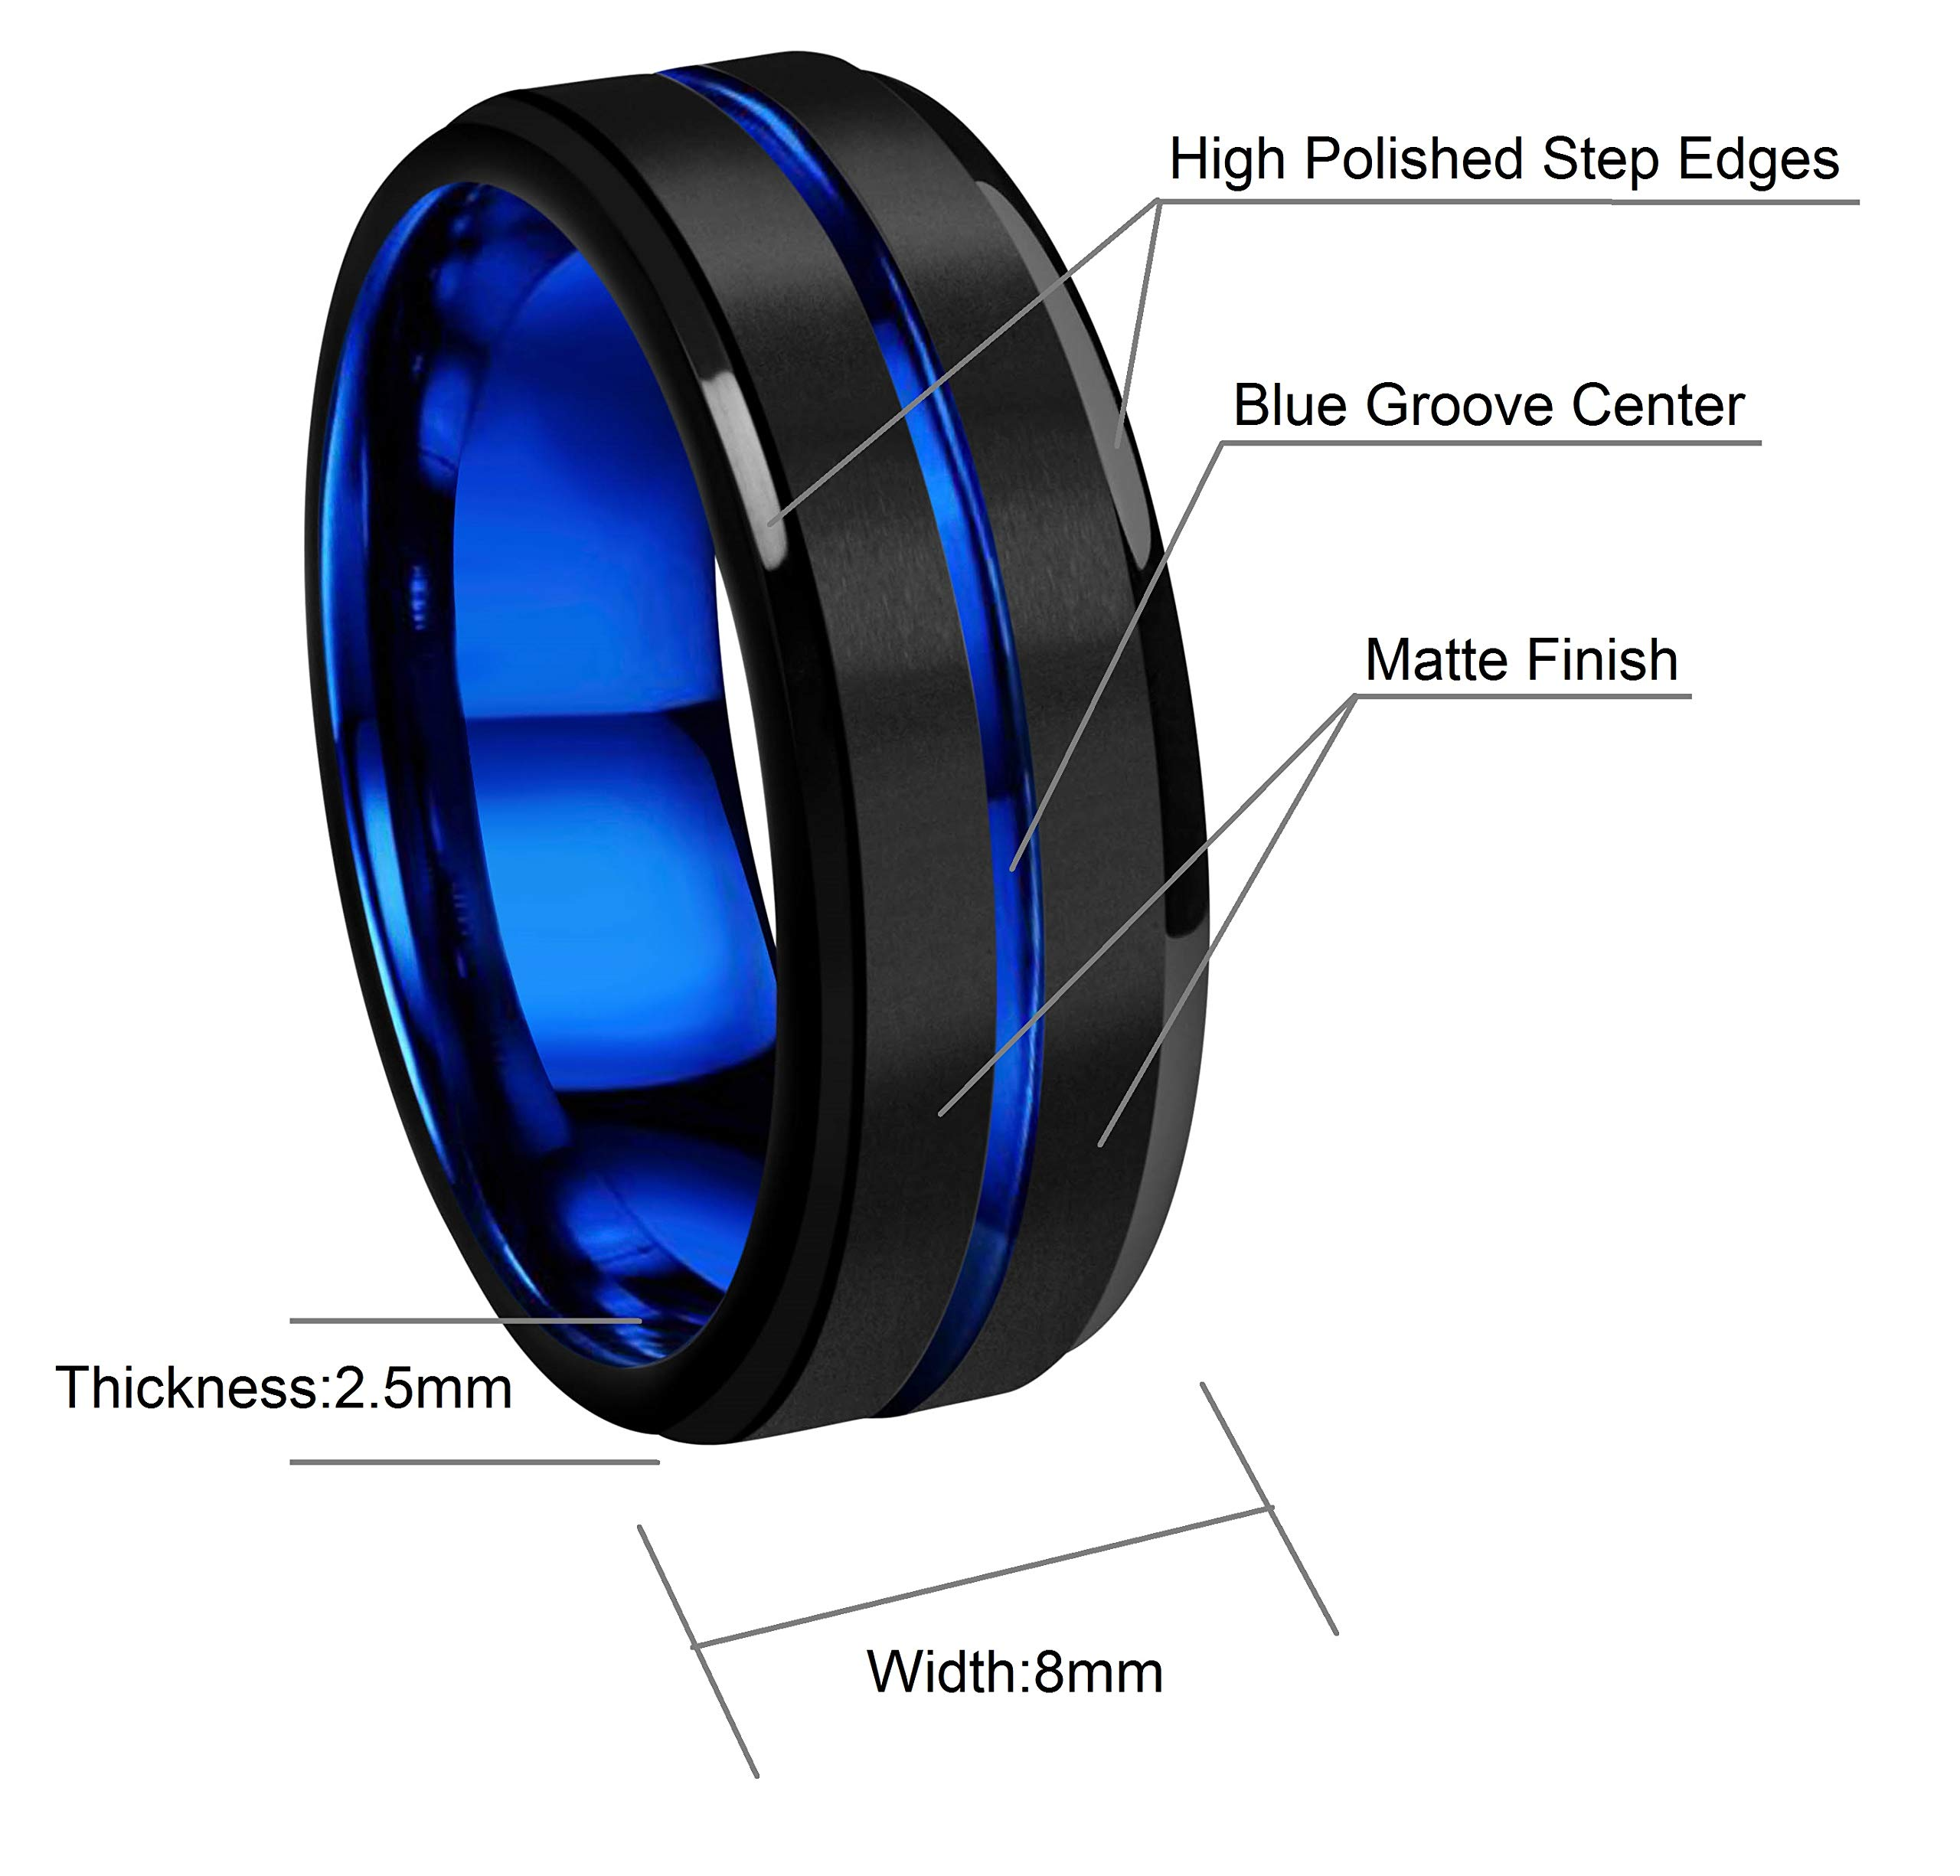 CROWNAL 8mm Blue Groove Black Matte Finish Tungsten Carbide Wedding Band Ring Step Down Engraved I Love You Size 5 to 17 (8mm,10) by CROWNAL (Image #3)